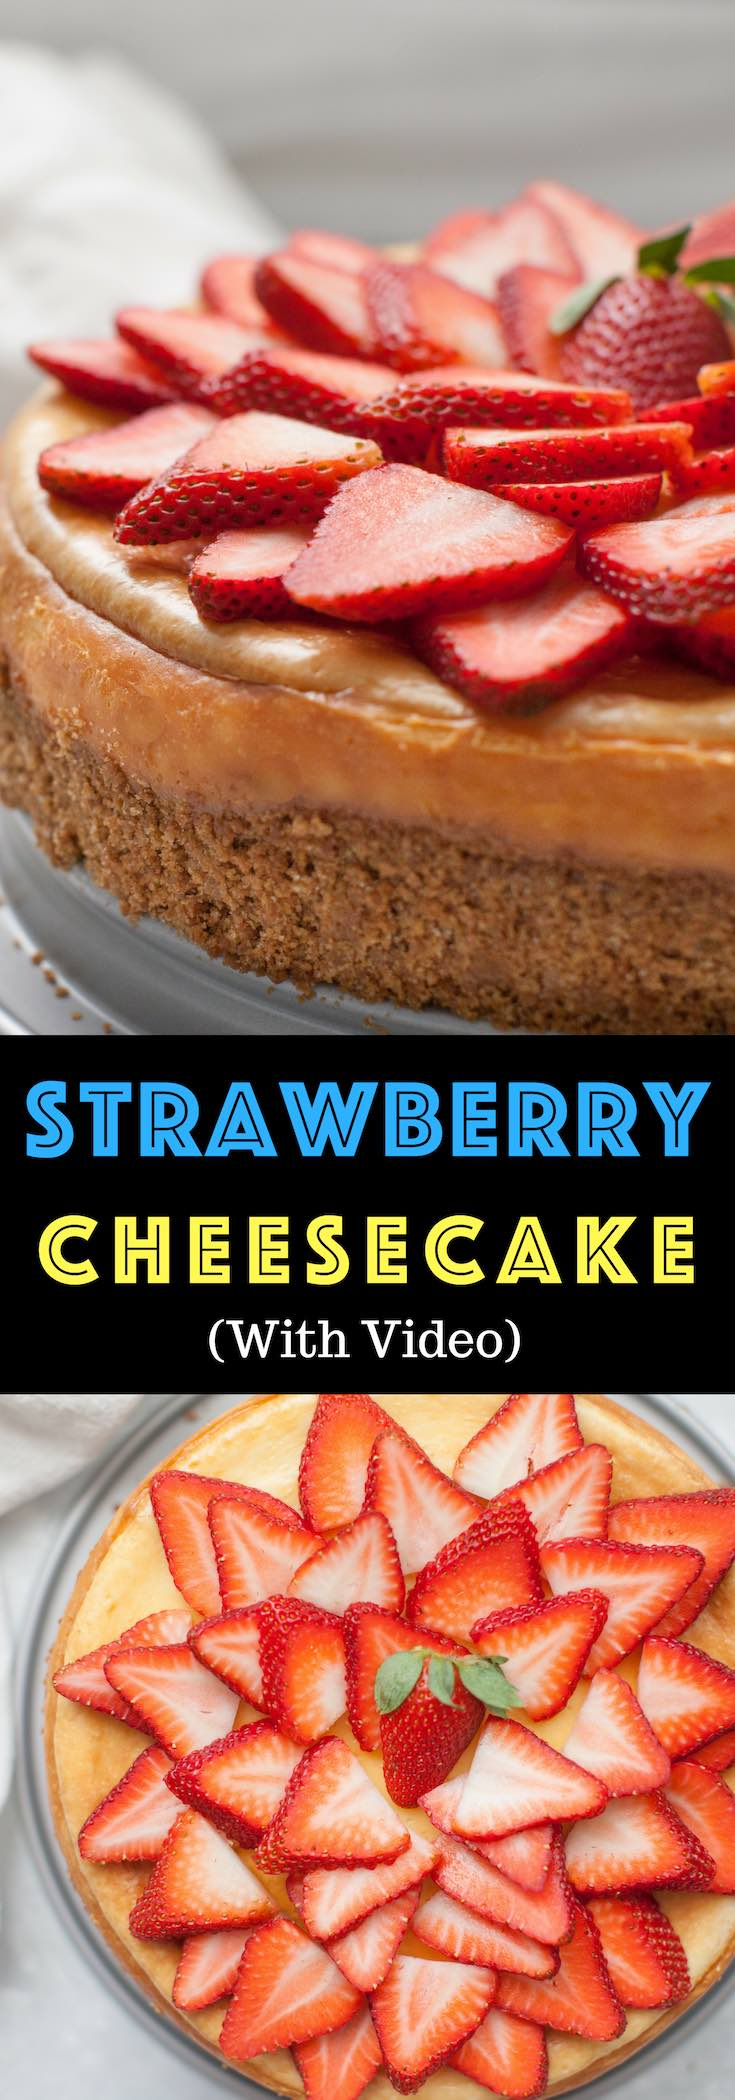 Strawberry White Chocolate Cheesecake is a fluffy baked cheesecake with a graham cracker crust and fresh strawberries on top. The perfect melt-in-your-mouth dessert for holidays including Easter, Mother's Day, Father's Day, Thanksgiving and Christmas as well as parties, potlucks and birthdays! Made with Happy Eggs from @happyeggcousa #healthyhappyeggs #organic #AD